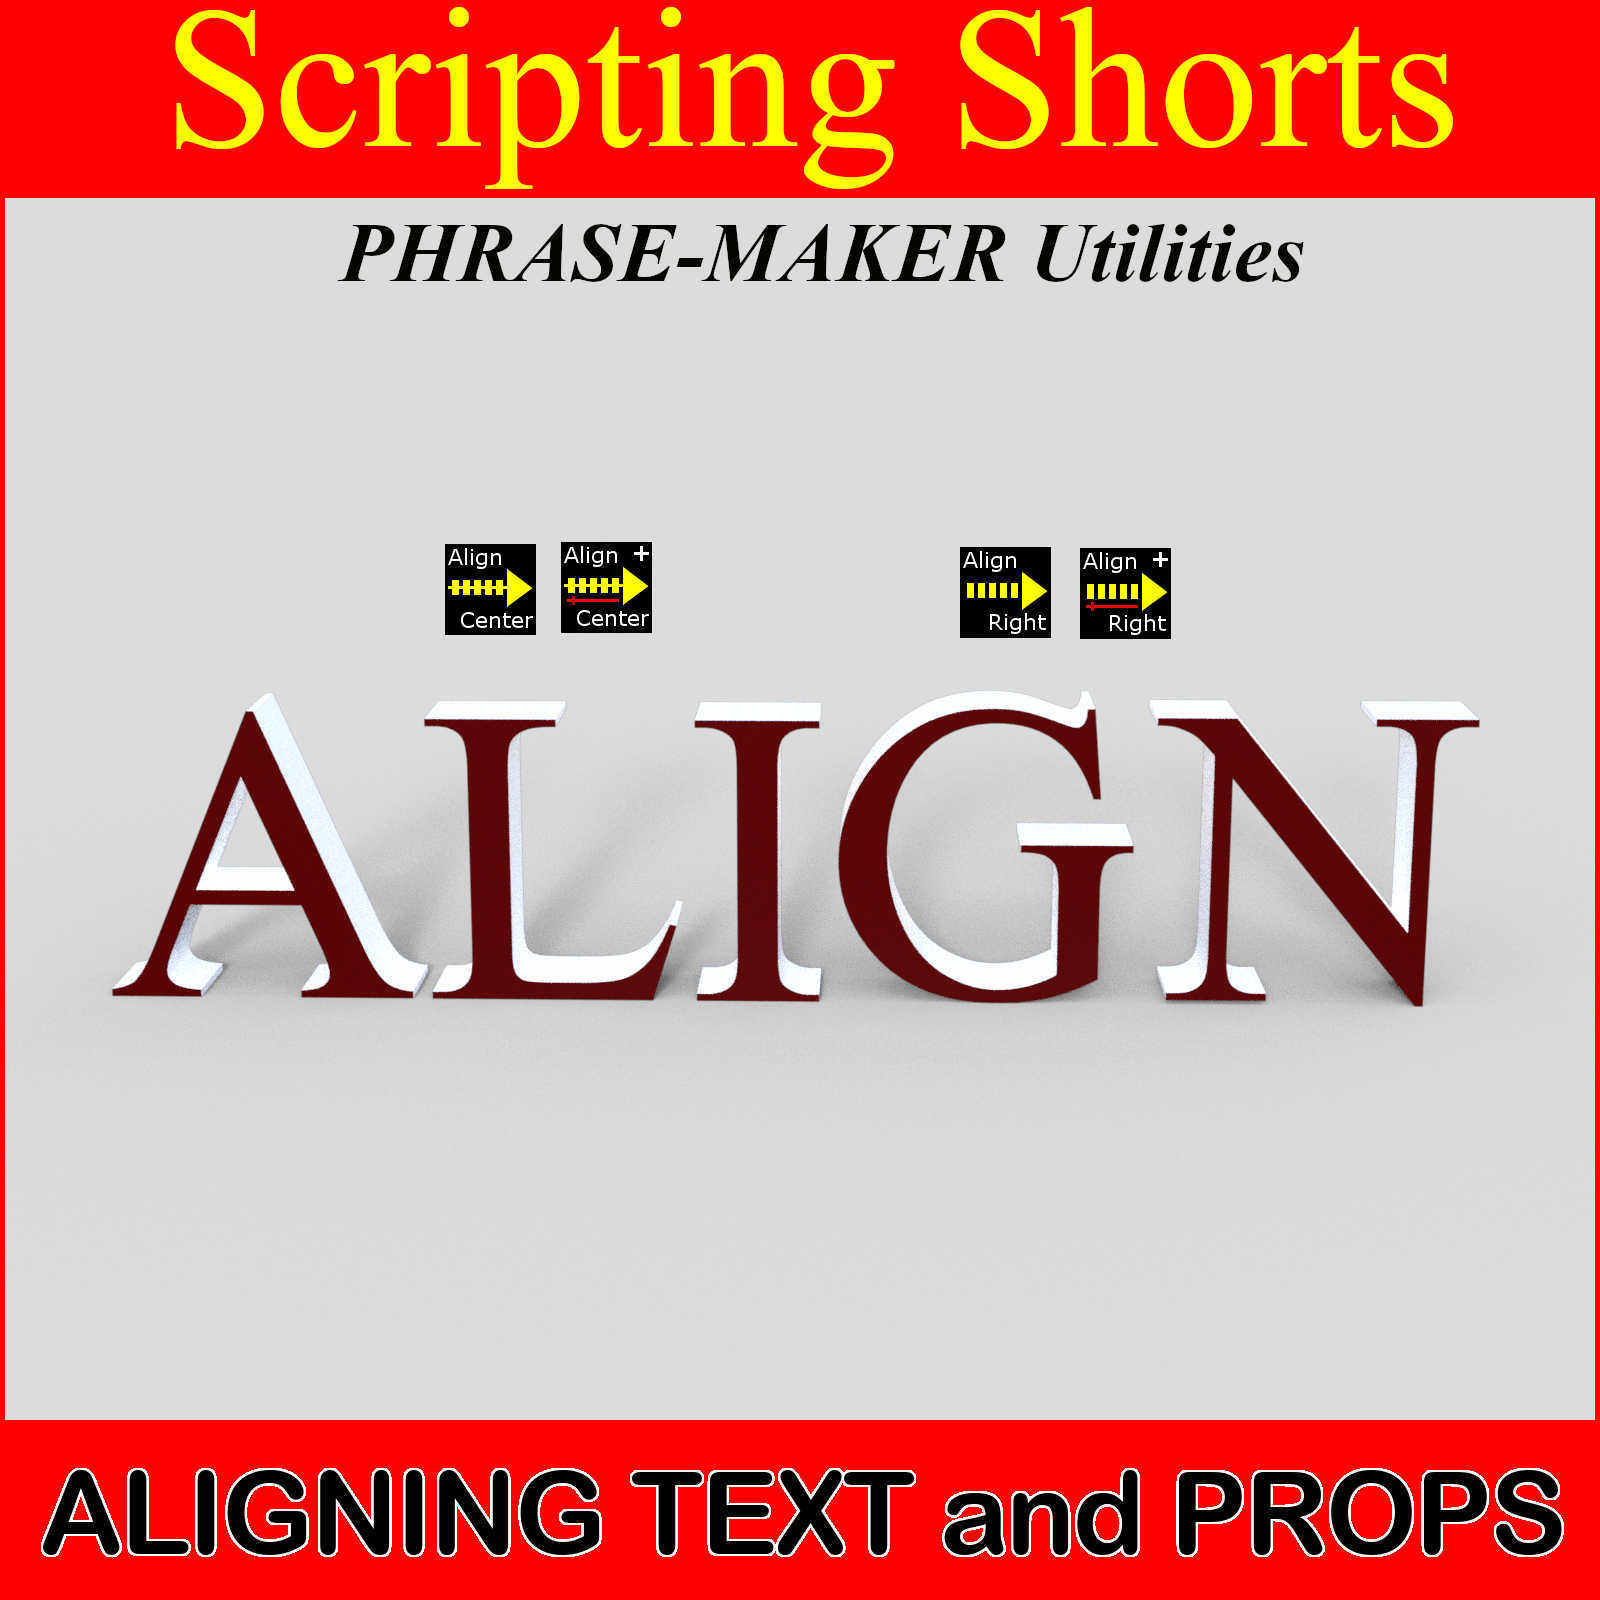 SCRIPTING SHORTS Aligning Text and Props (Phrase-Maker Utilities) by Winterbrose